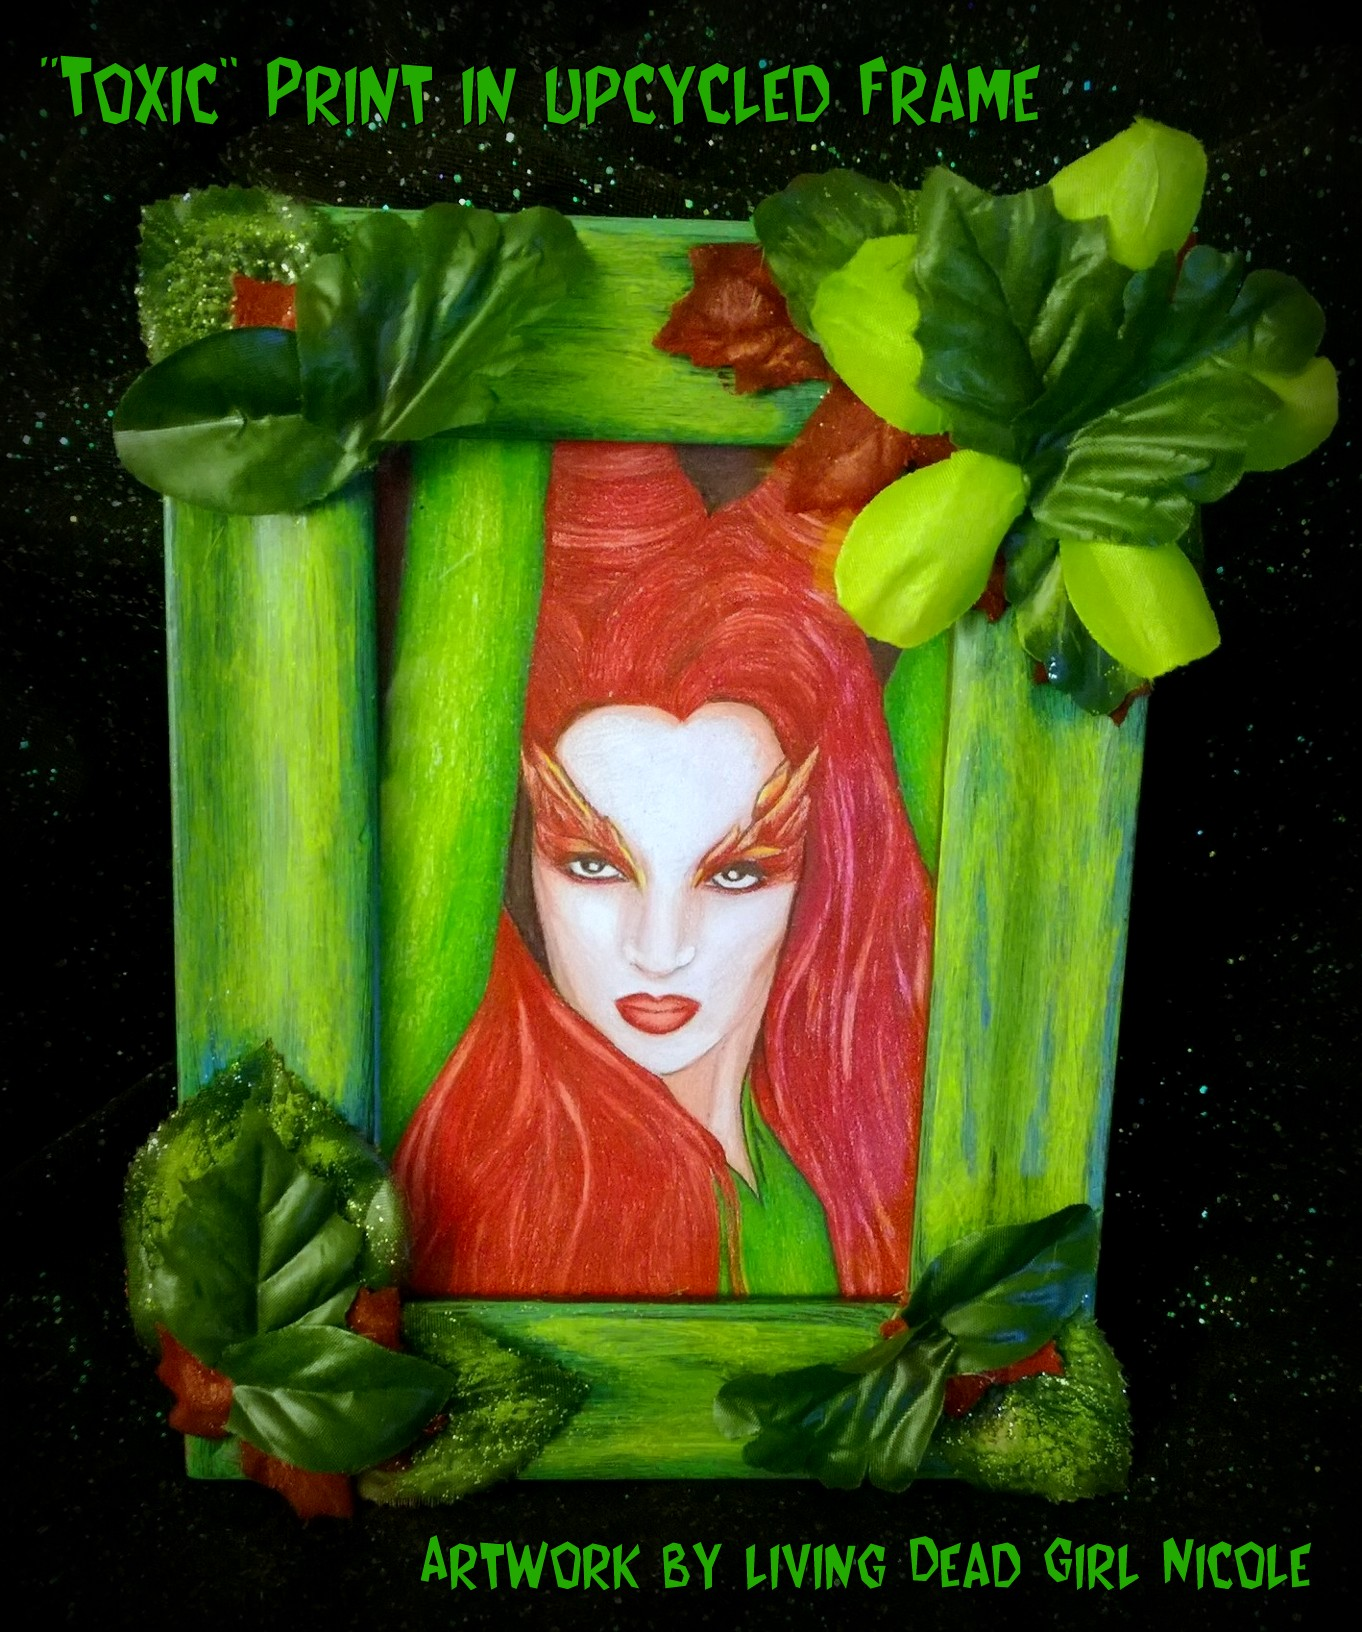 Poison Ivy in upcycled frame